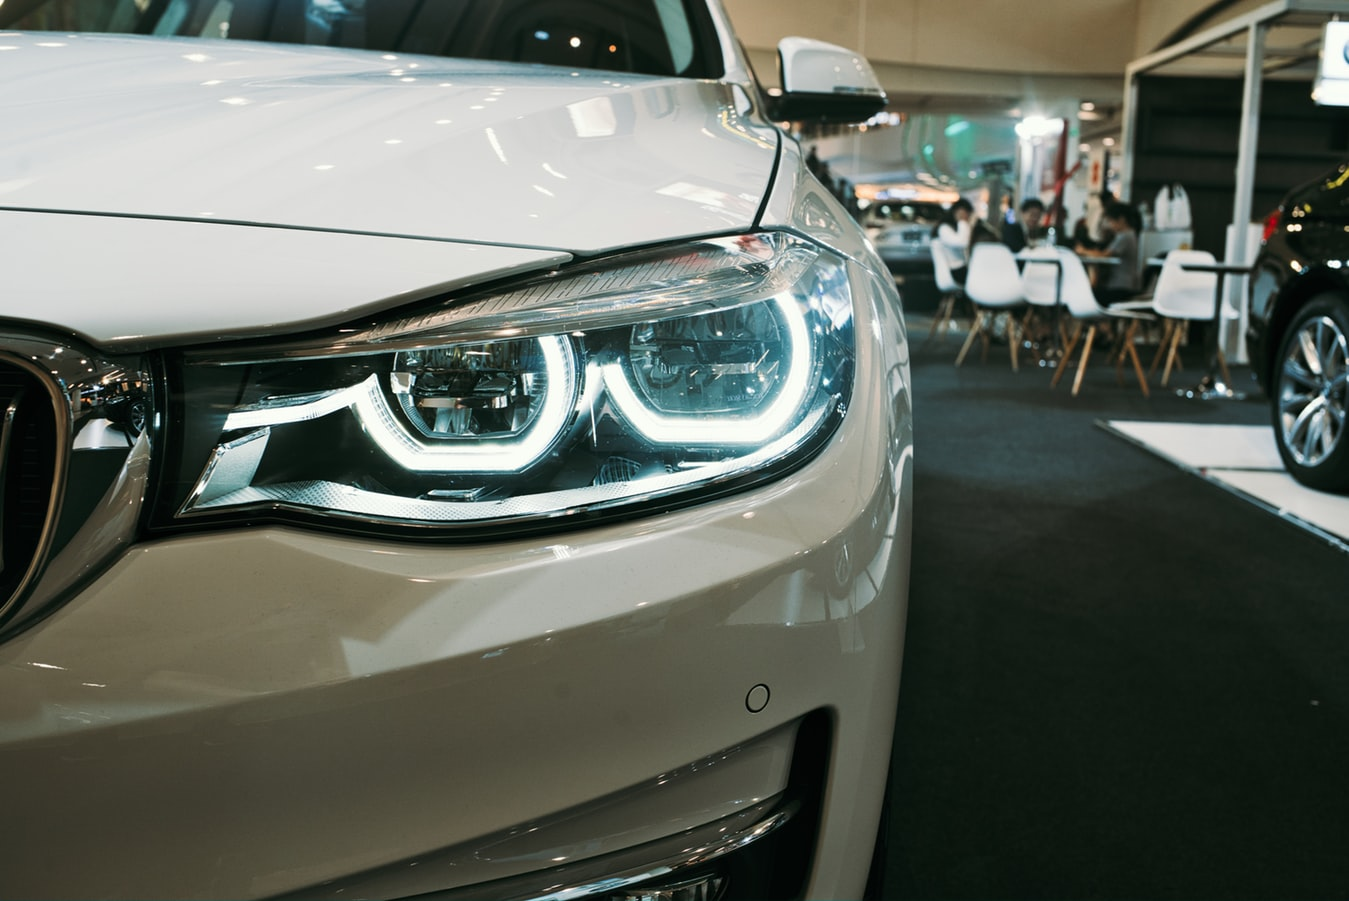 Polluting Cars: Car Manufacturers Could Be 'Forced' To Stop Selling